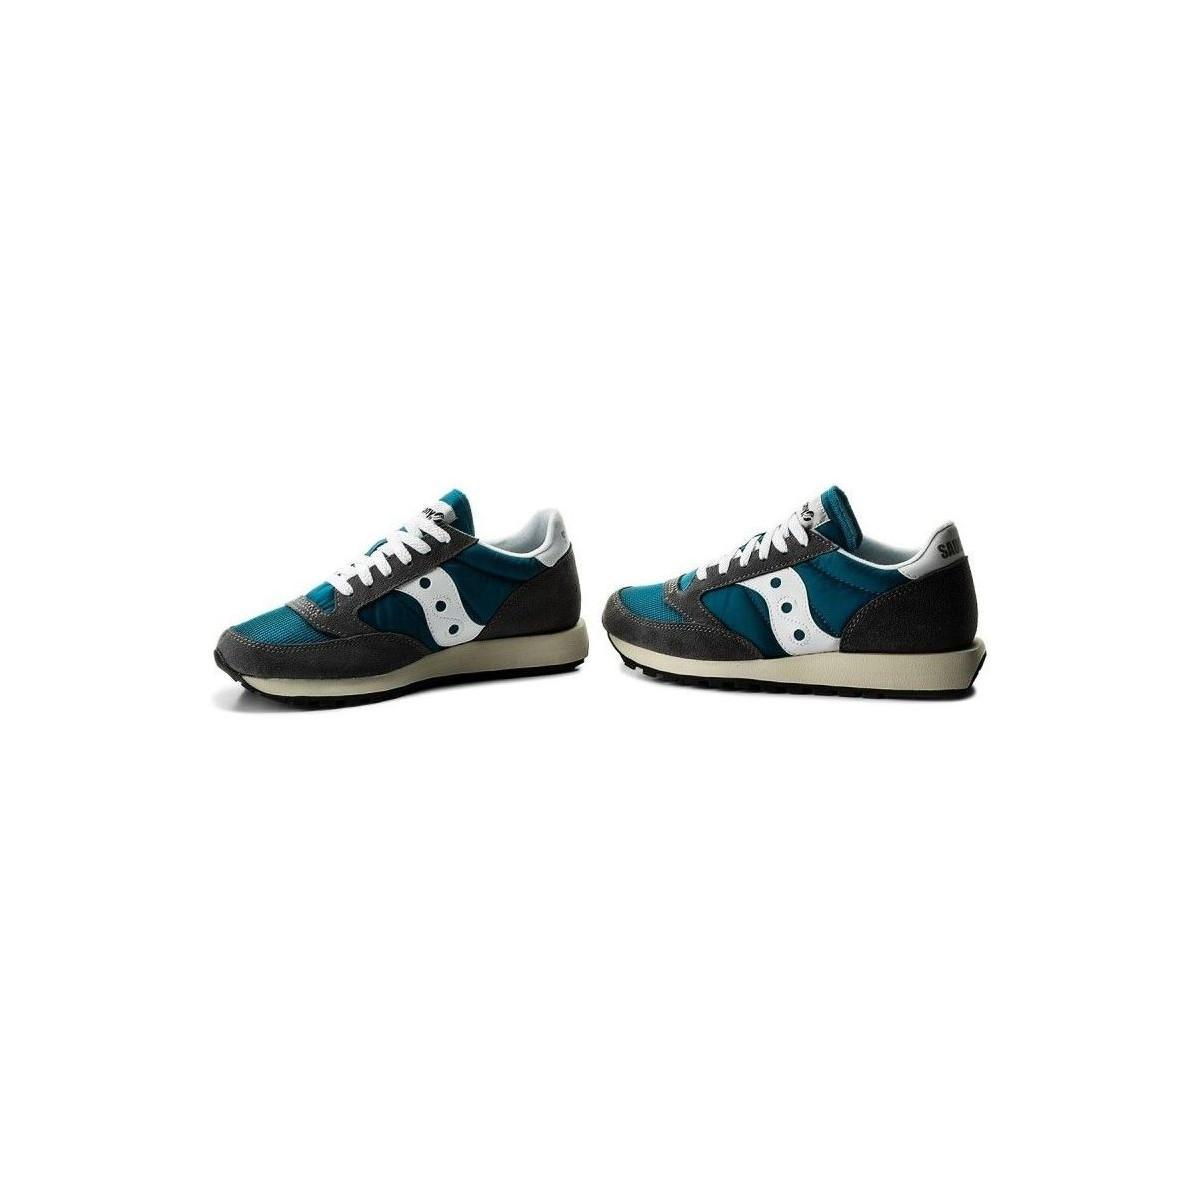 finest selection db2a6 44f66 Saucony - Jazz Original Vintage S70368-20 Men s Shoes (trainers) In Blue  for. View fullscreen